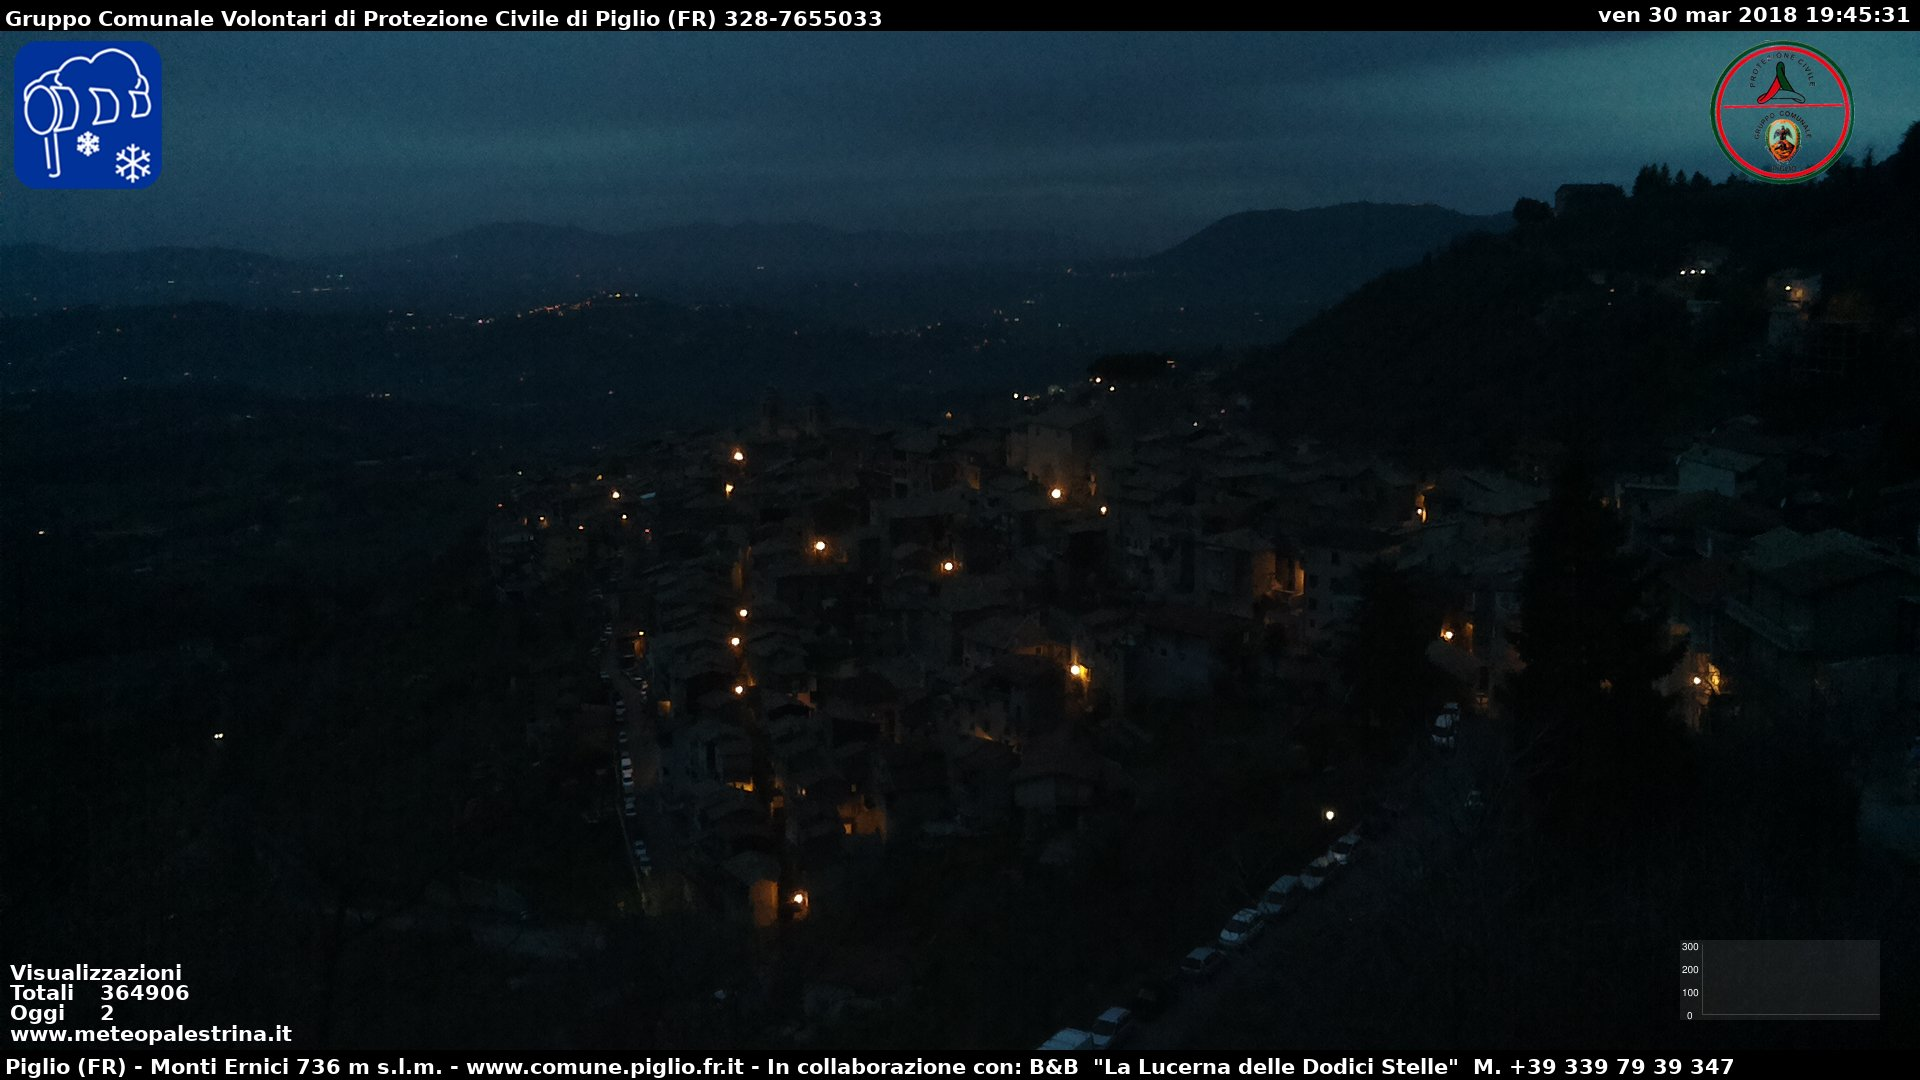 Webcam Piglio (FR) Webcam